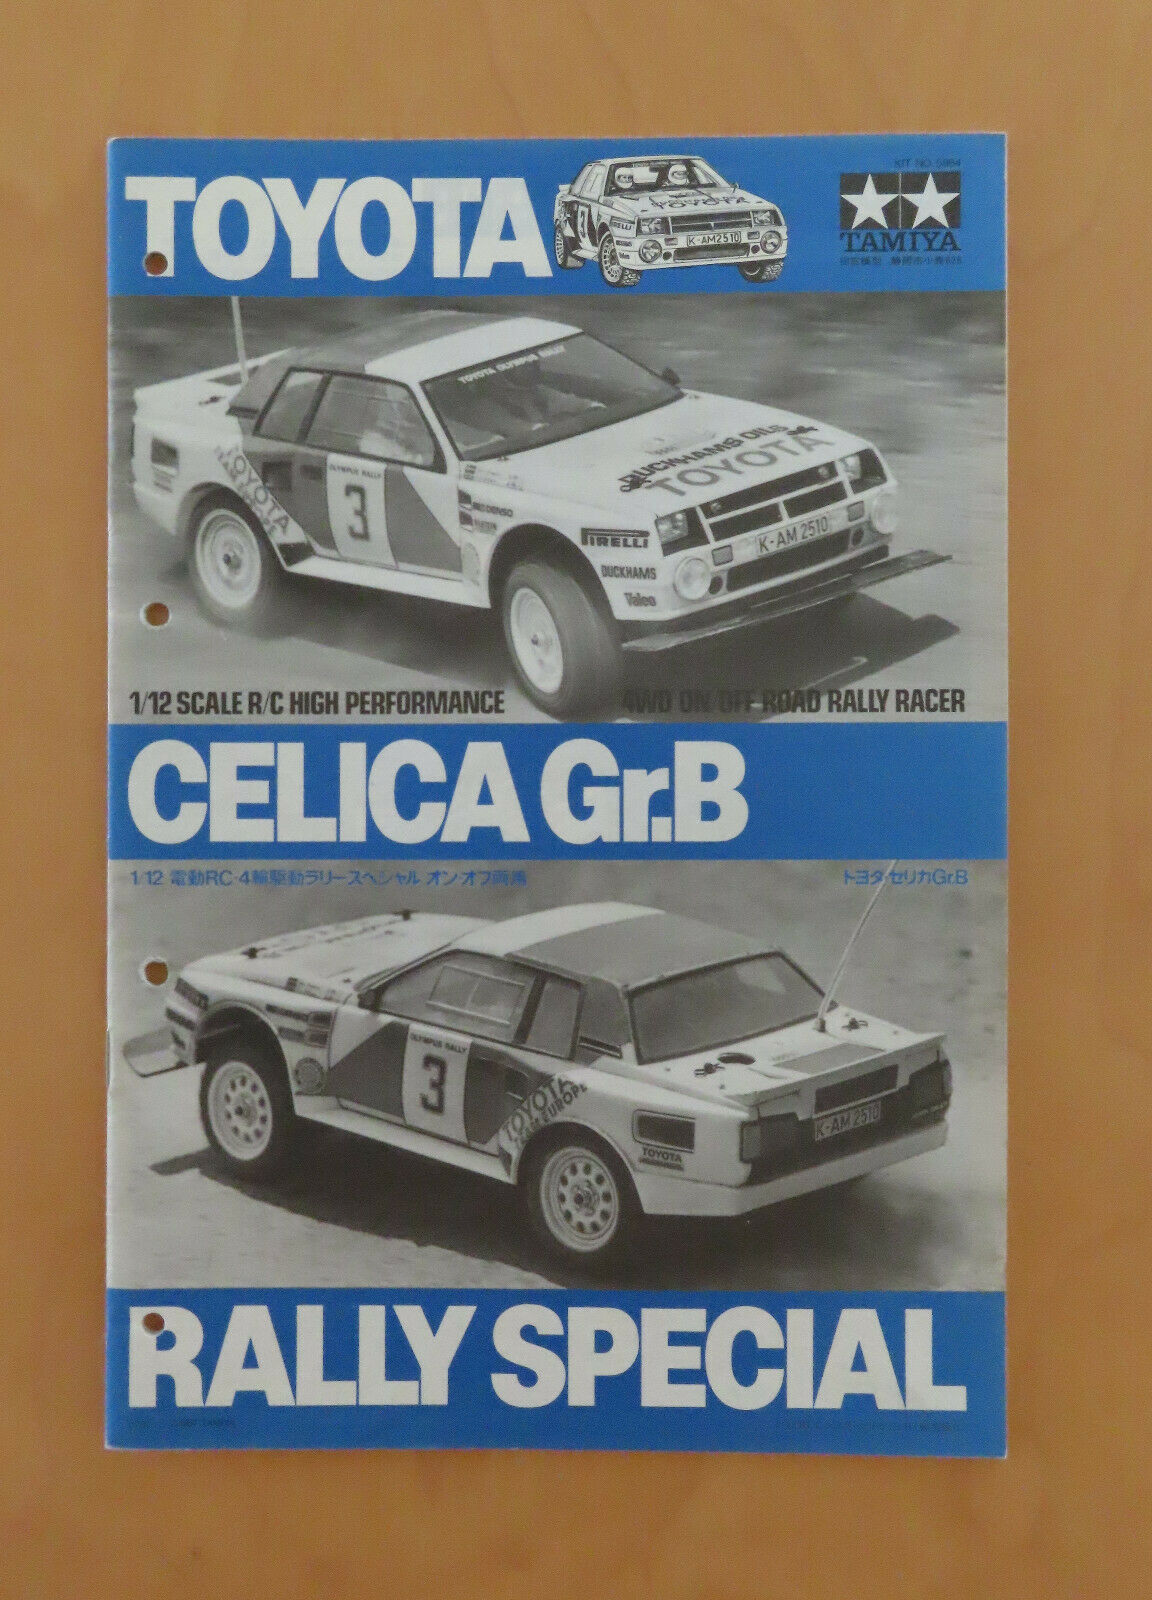 RC Tamiya MANUALE Toyota Celica. Gr Rally SPECIALE 5864 B, 58064 USATO 1987